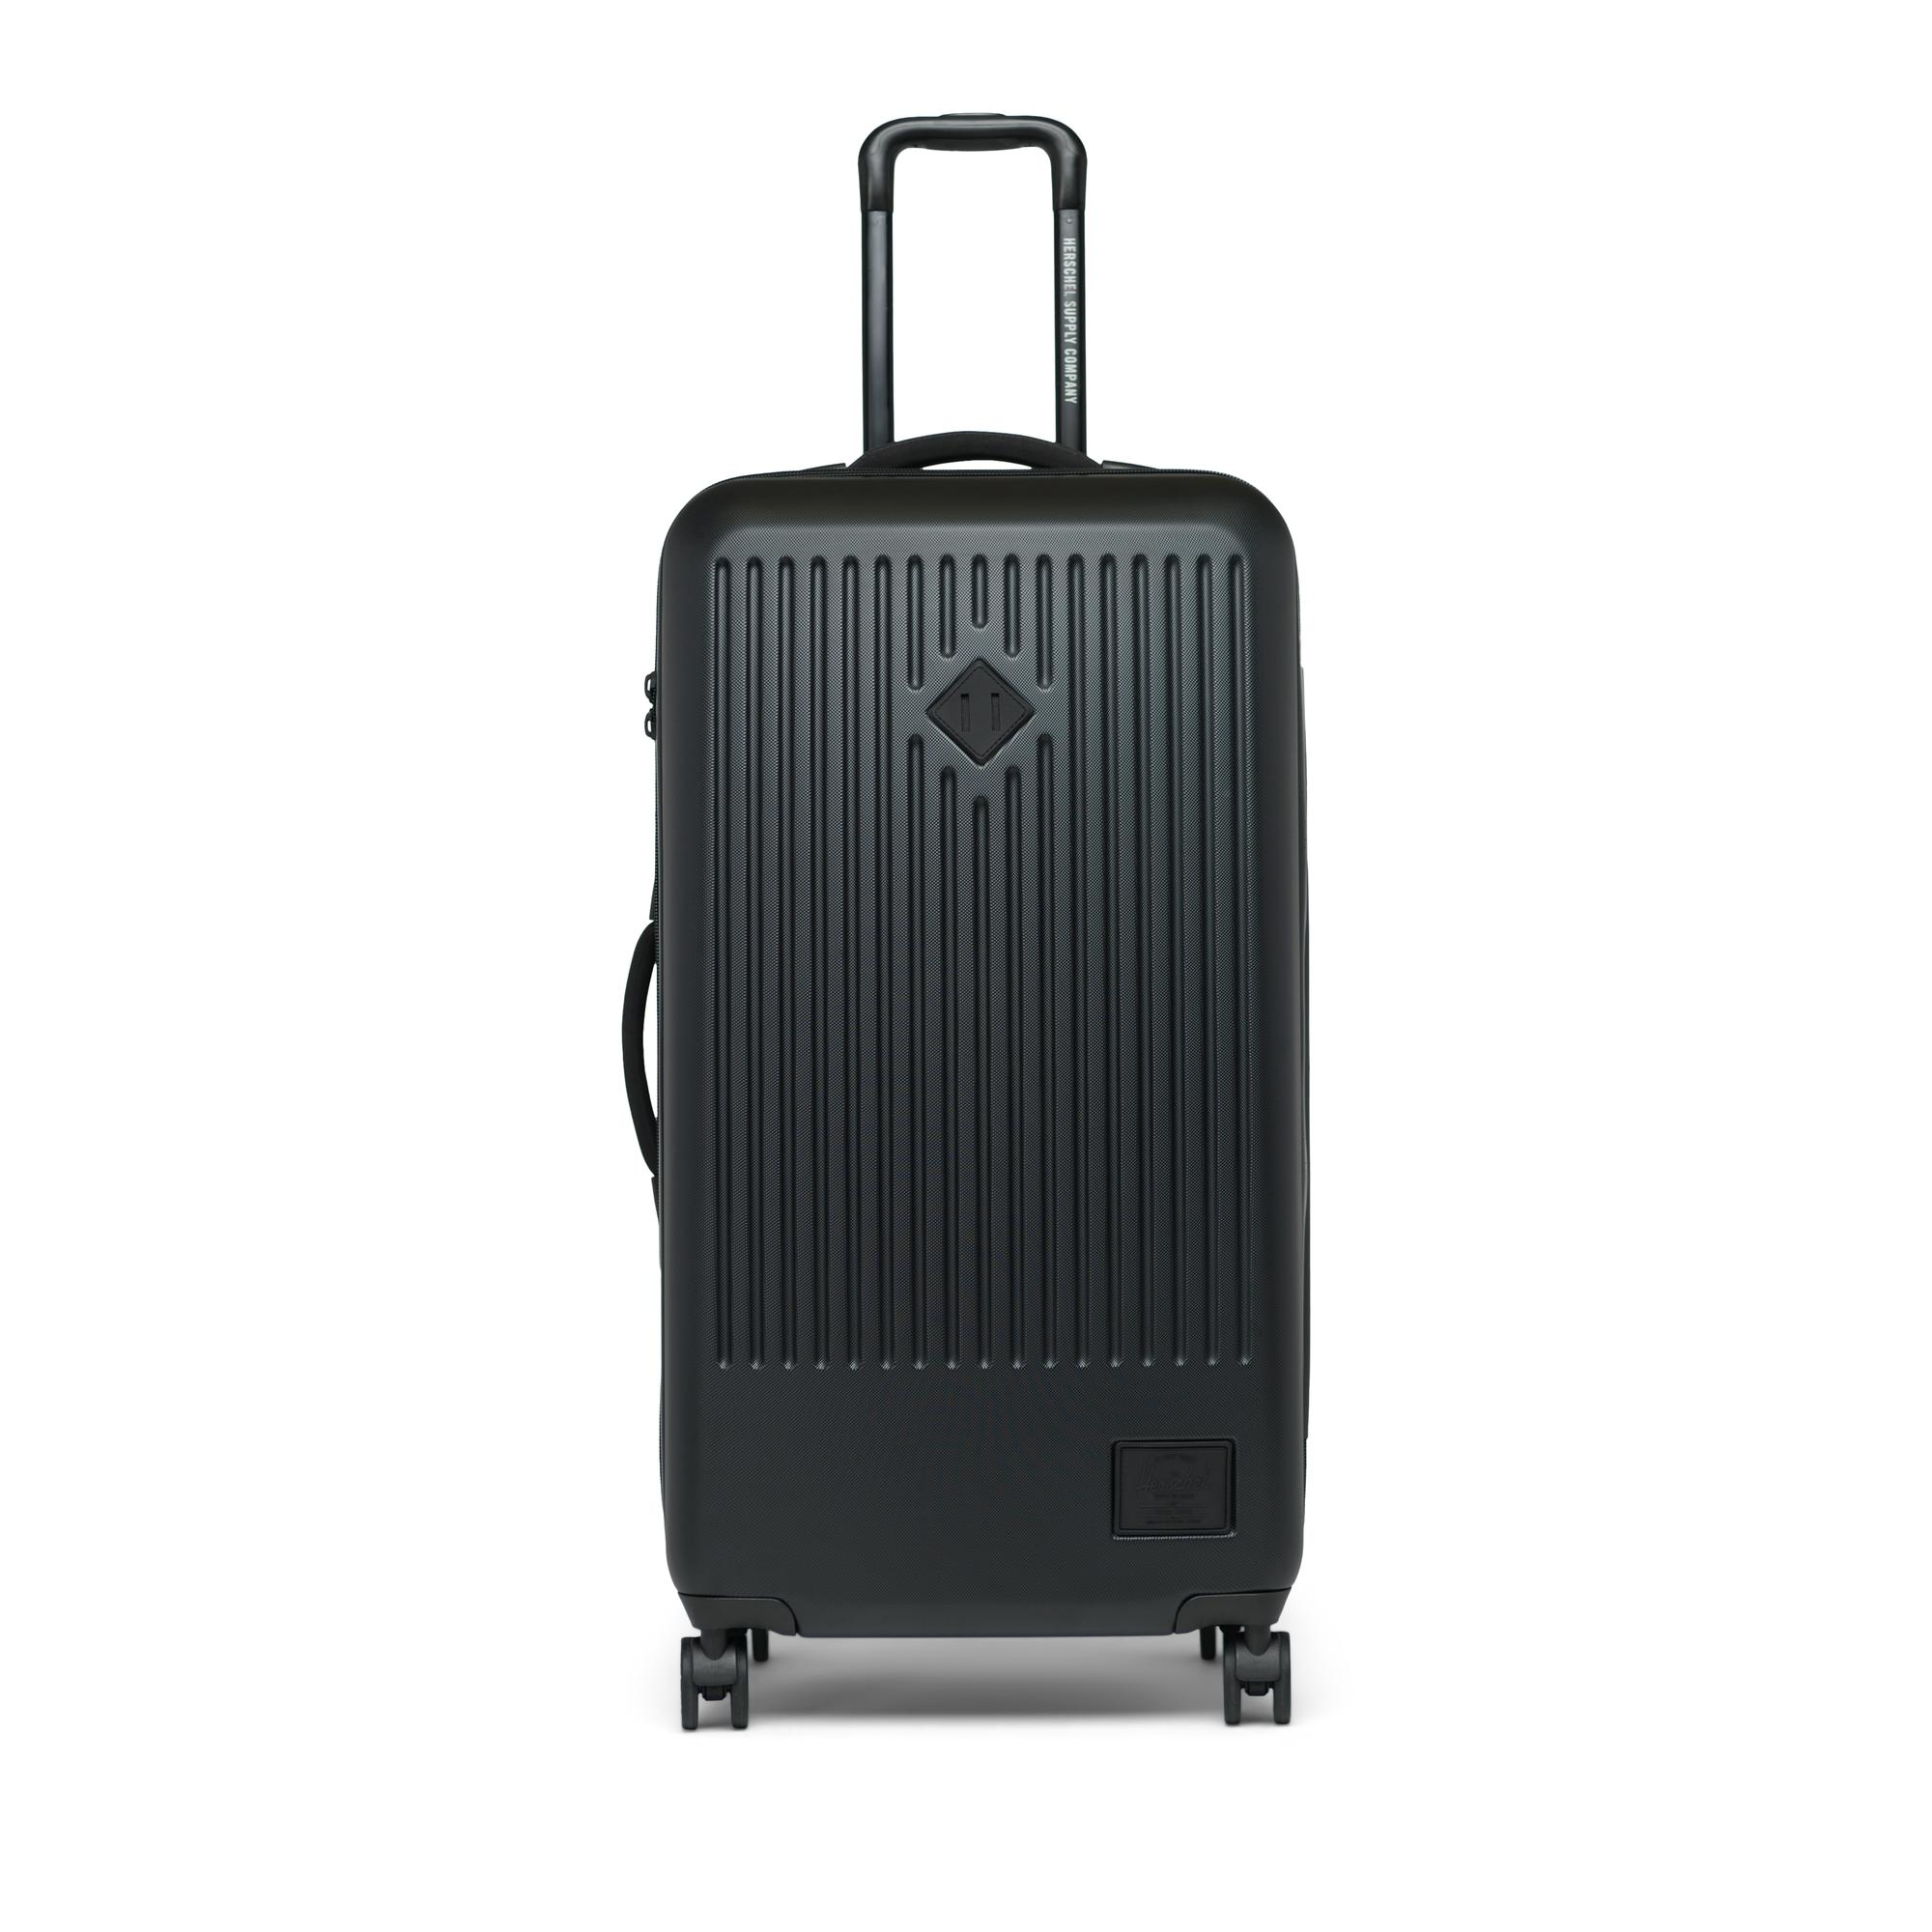 92cb912d3f9e Trade Luggage Large | Herschel Supply Company